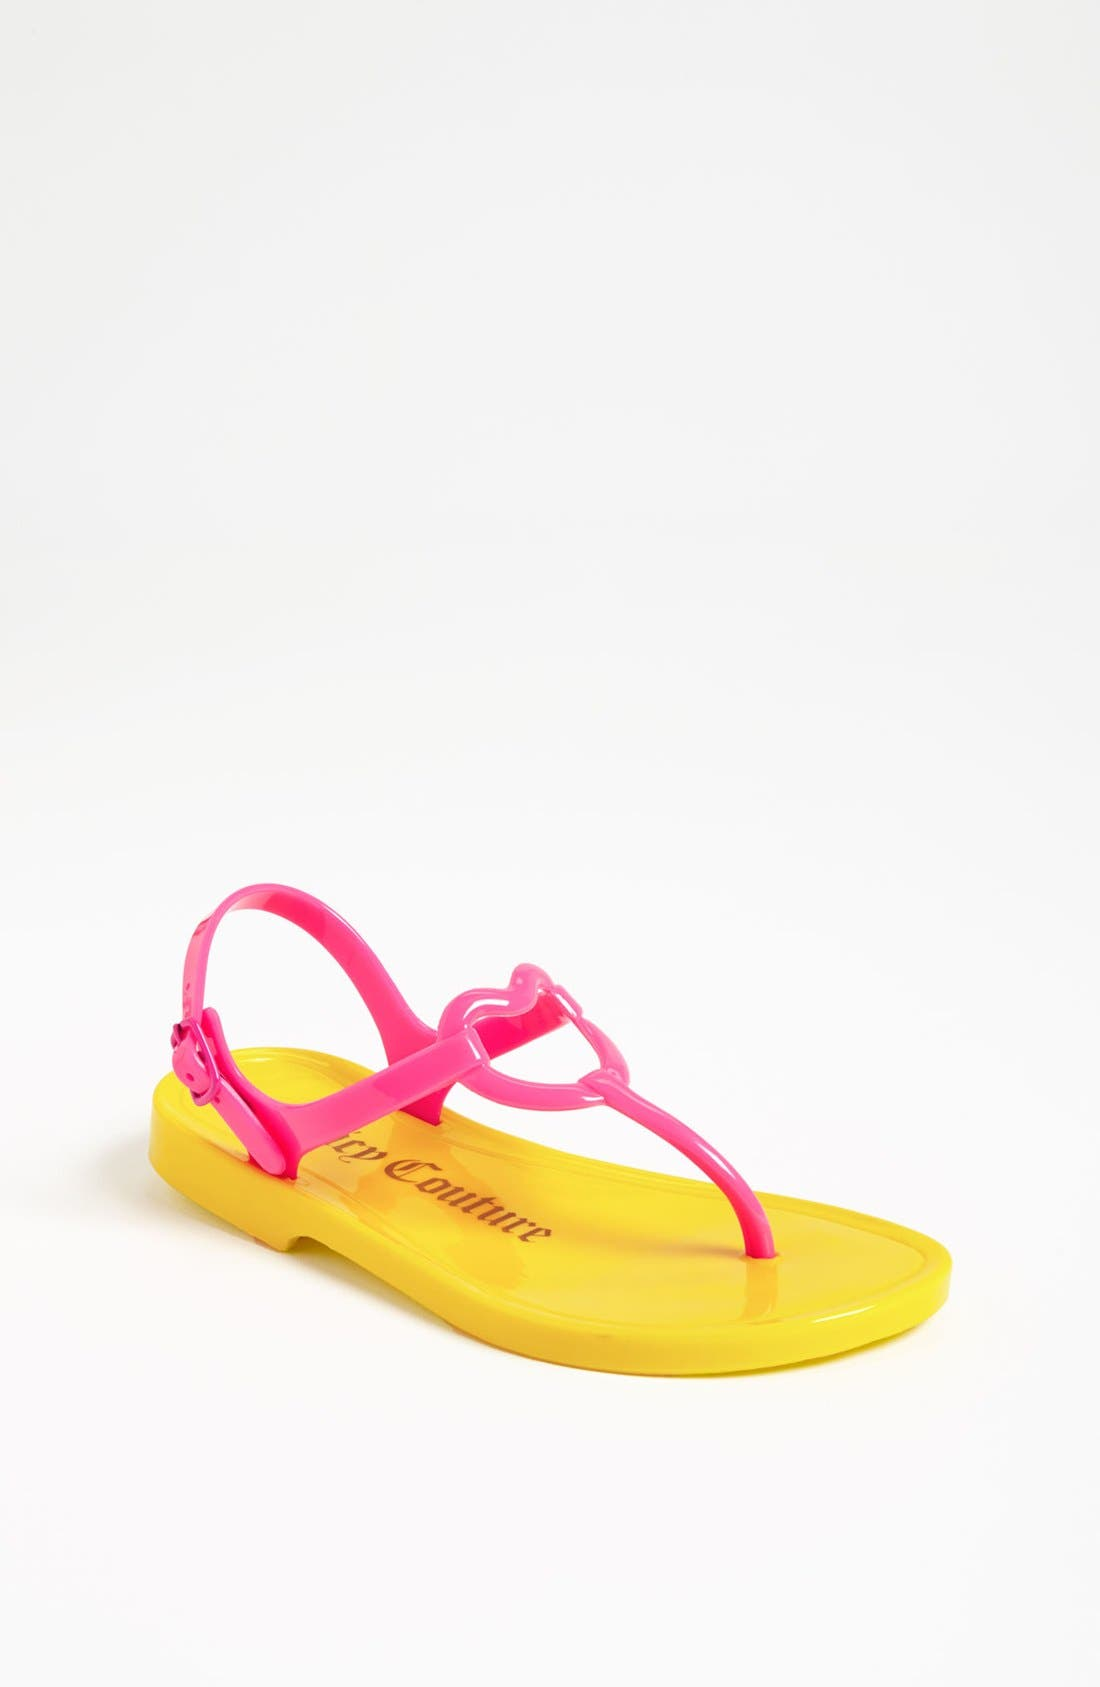 Main Image - Juicy Couture 'Rory' Sandal (Toddler, Little Kid & Big Kid)